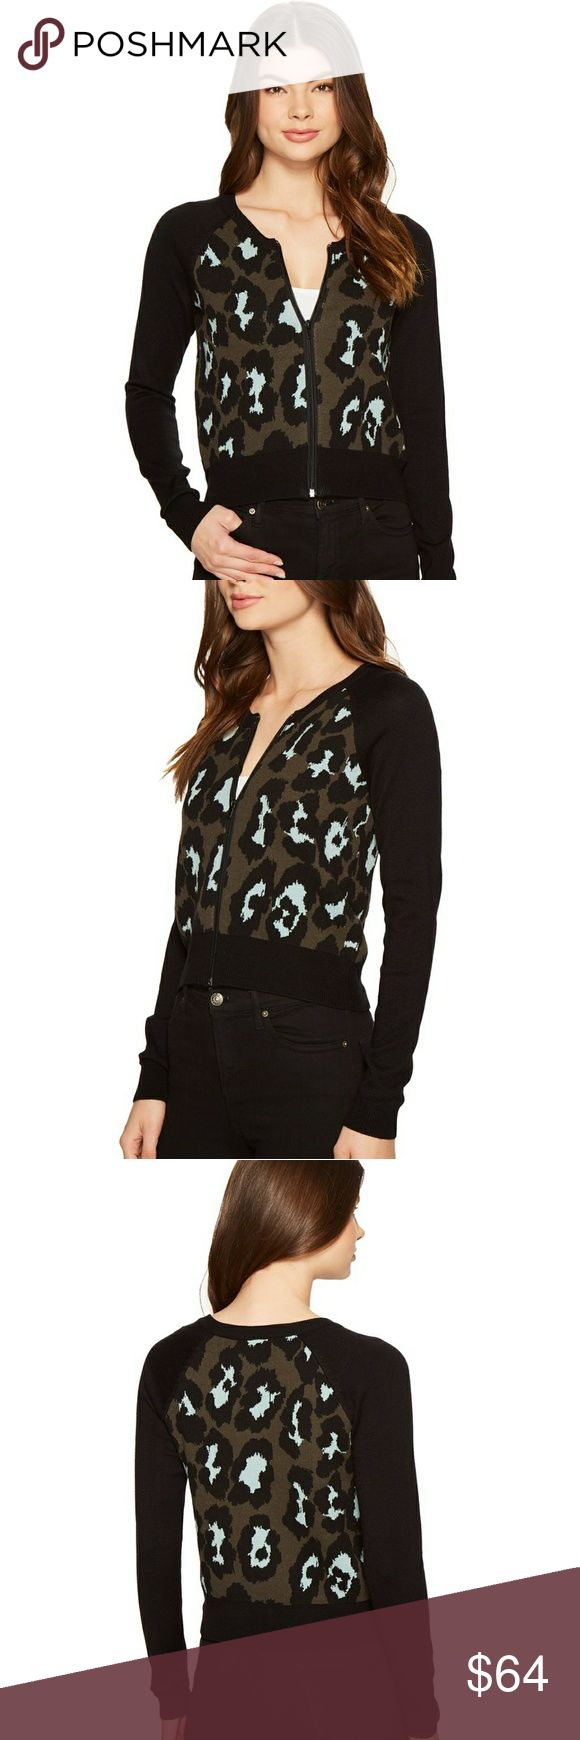 """ROMEO AND JULIET Animal Print Zip Crop Cardigan NWT - ROMEO AND JULIET Animal Print Knit Zip Crop Cardigan. SIZE M. Blue and olive animal print body and solid black raglan sleeves. Ribbed black trim.Front zip crop cardigan.  Bust: 17.5"""" (laying flat) Waist: 15"""" (laying flat) Length from top to botton:19.5"""" Sleeve length from shoulder to edge:23.5"""" Romeo & Juliet Couture Sweaters"""